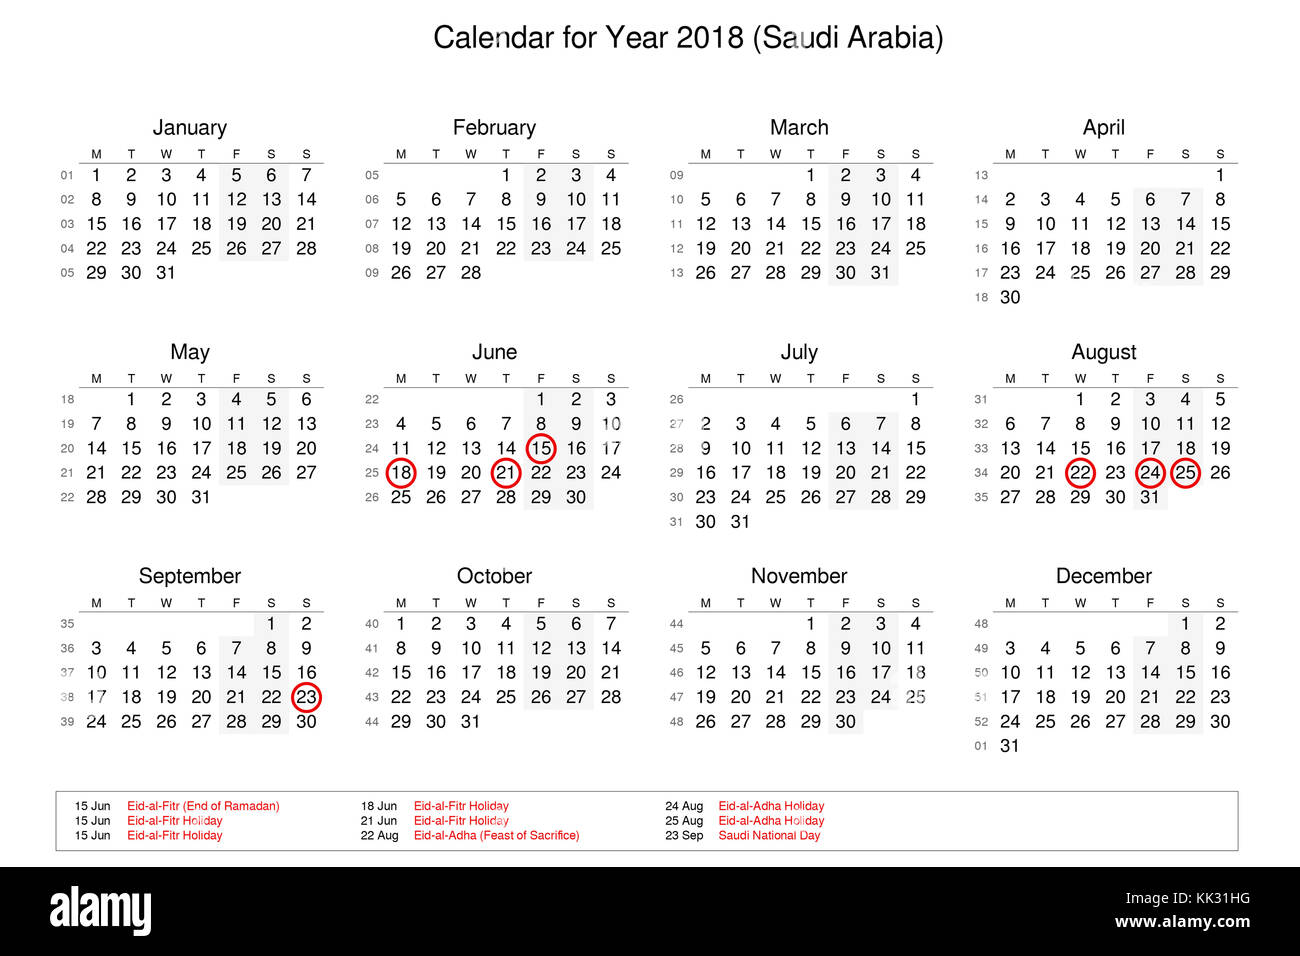 calendar of year 2018 with public holidays and bank holidays for saudi arabia